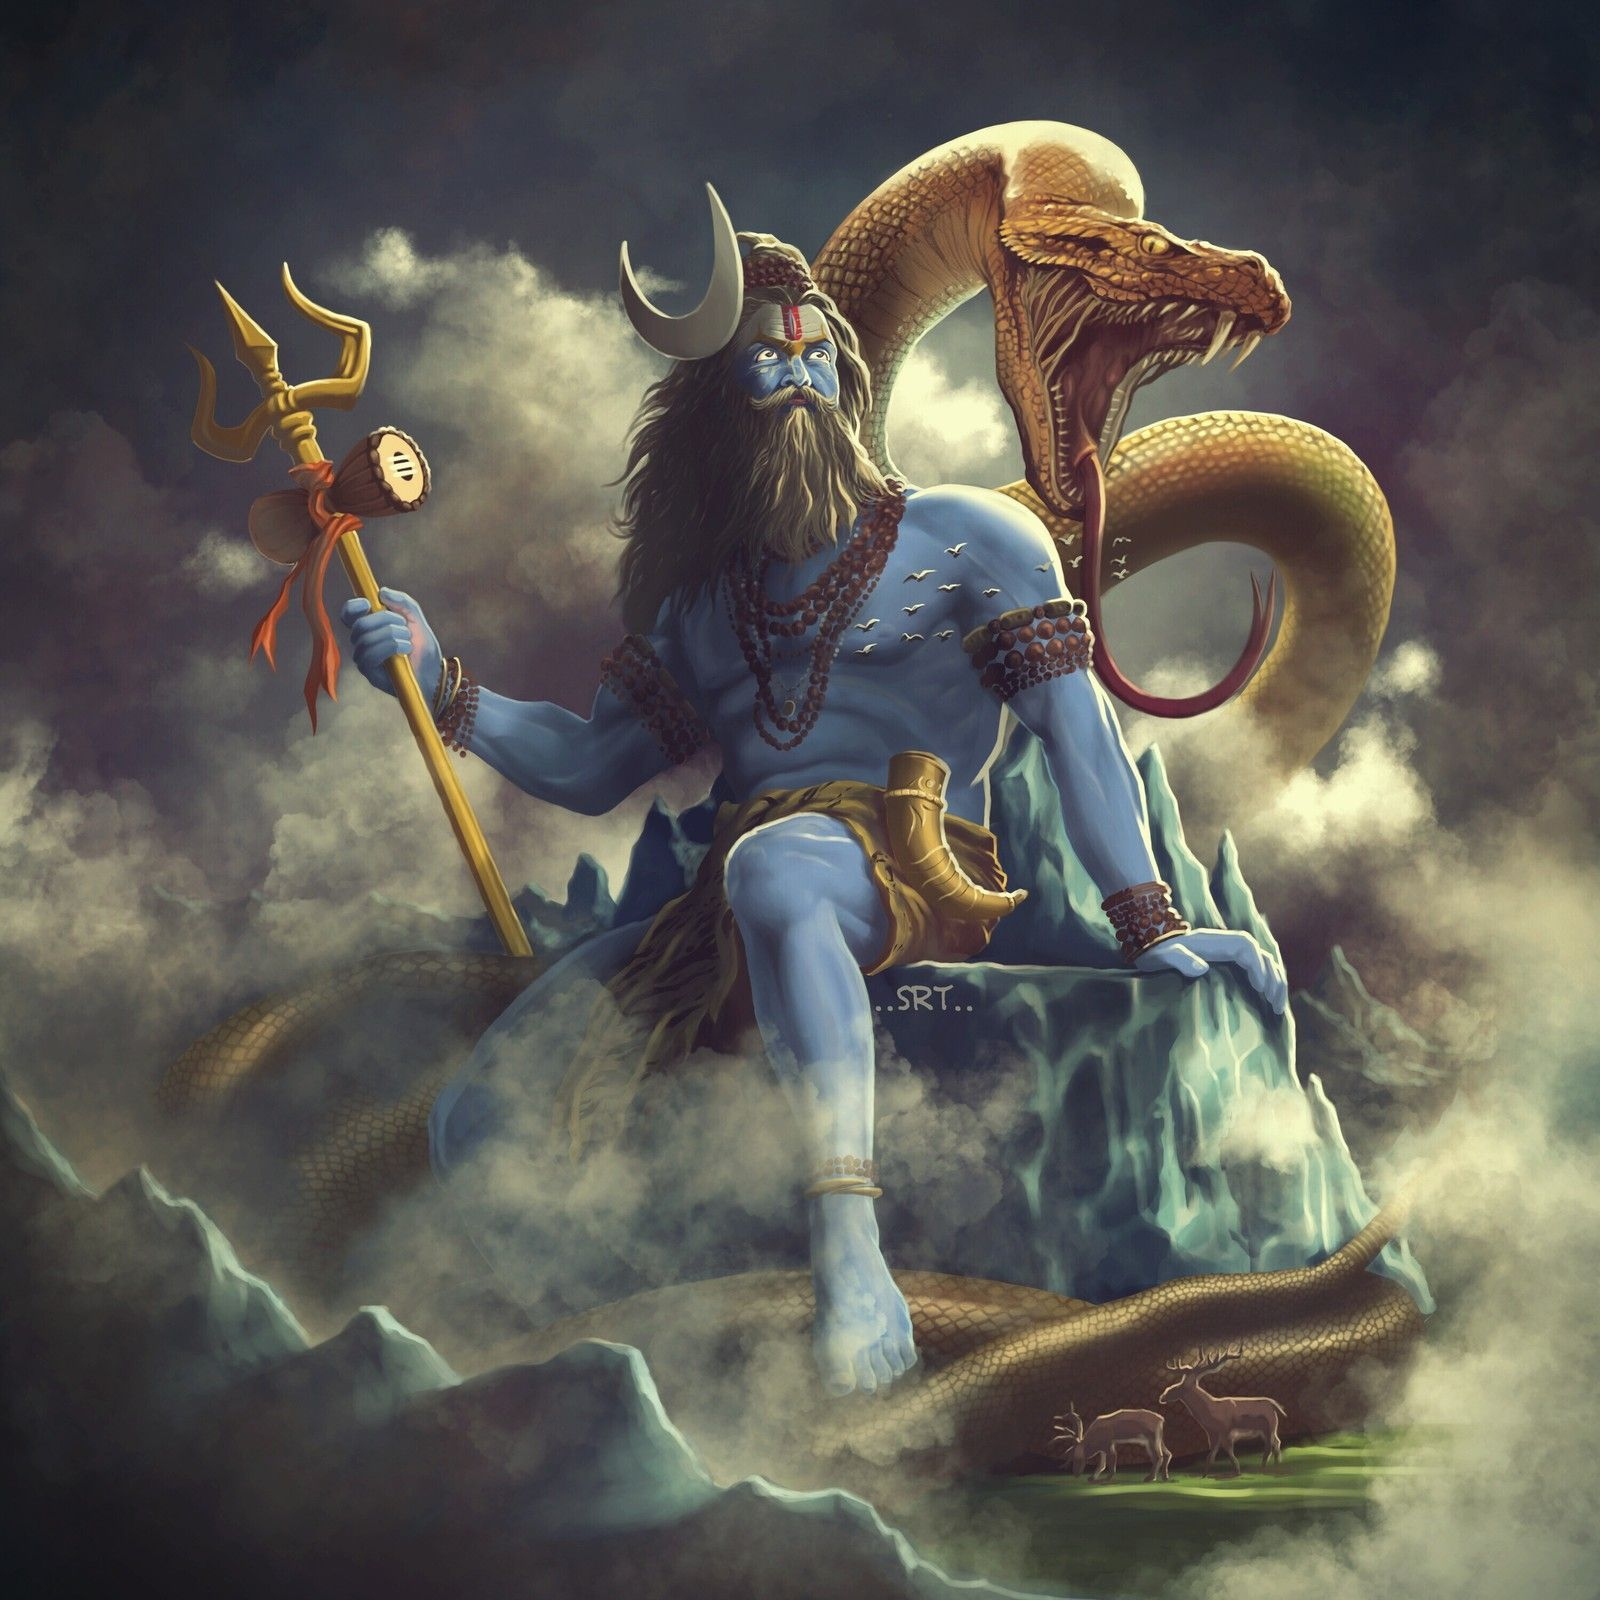 aghori shiva, Sarath babu on ArtStation at | aghori | Aghori